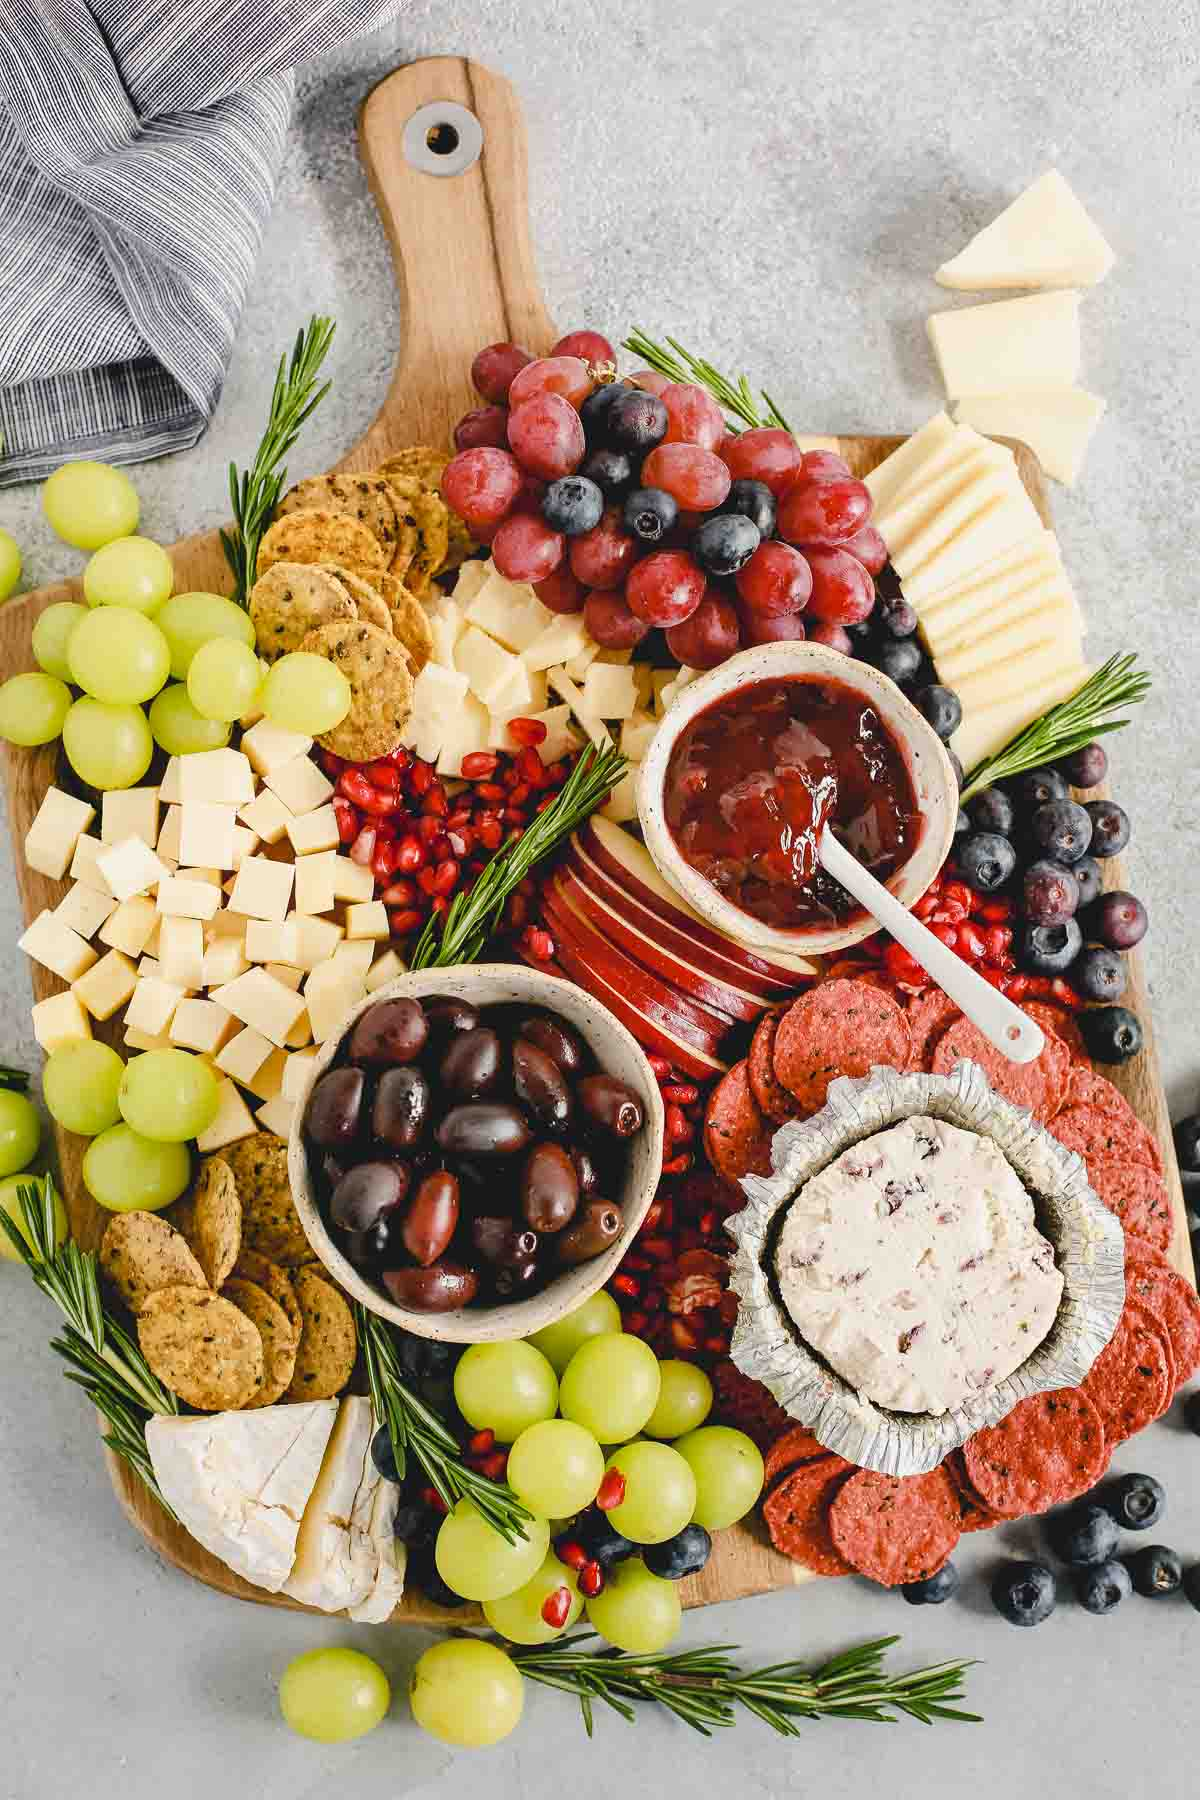 Holiday Cheese Board Perfect For The Holidays Or Everyday Entertaining